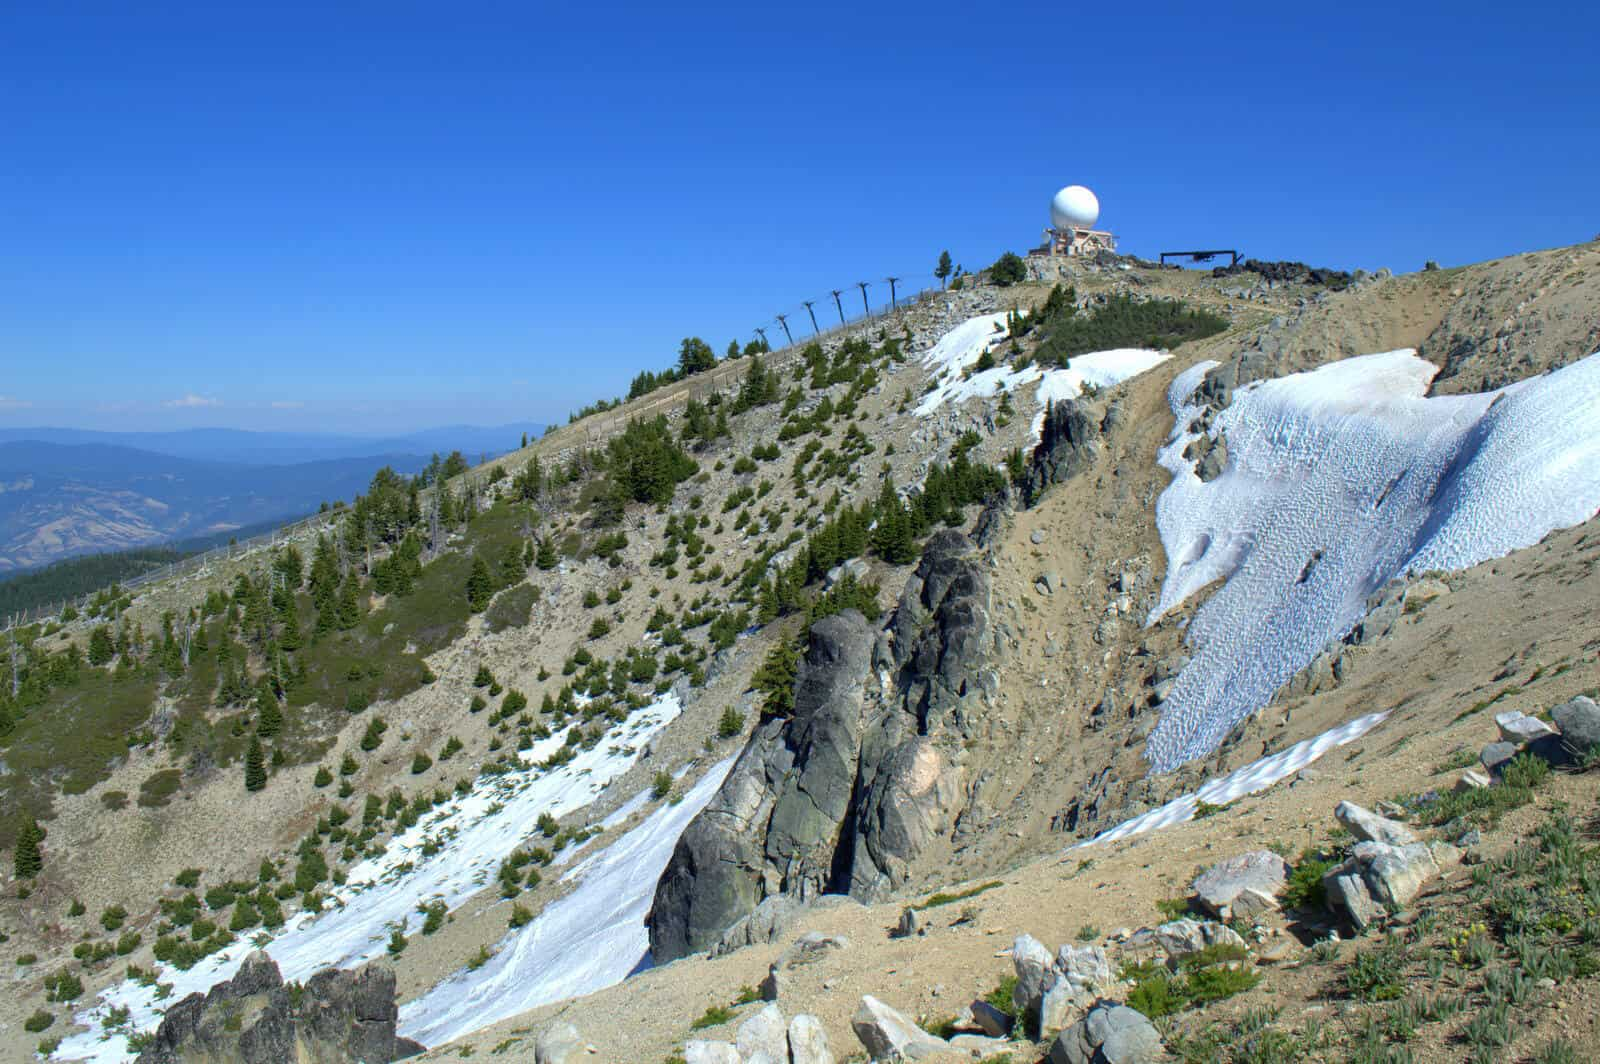 Te Mt. Ashland Bowl in Summer still holds snow!